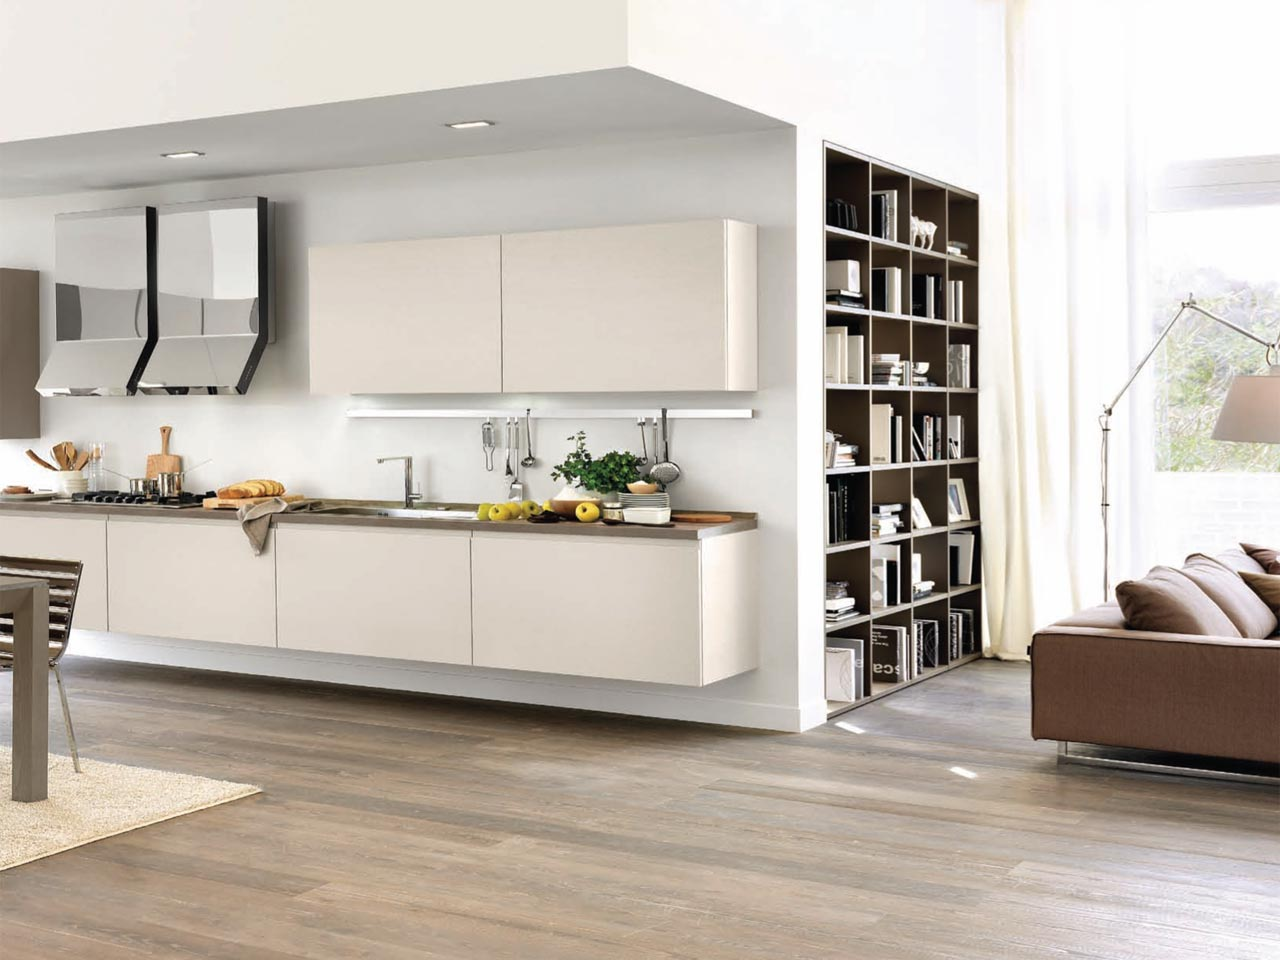 Linda cuisine suspendue by cucine lube for Cuisine integree bois